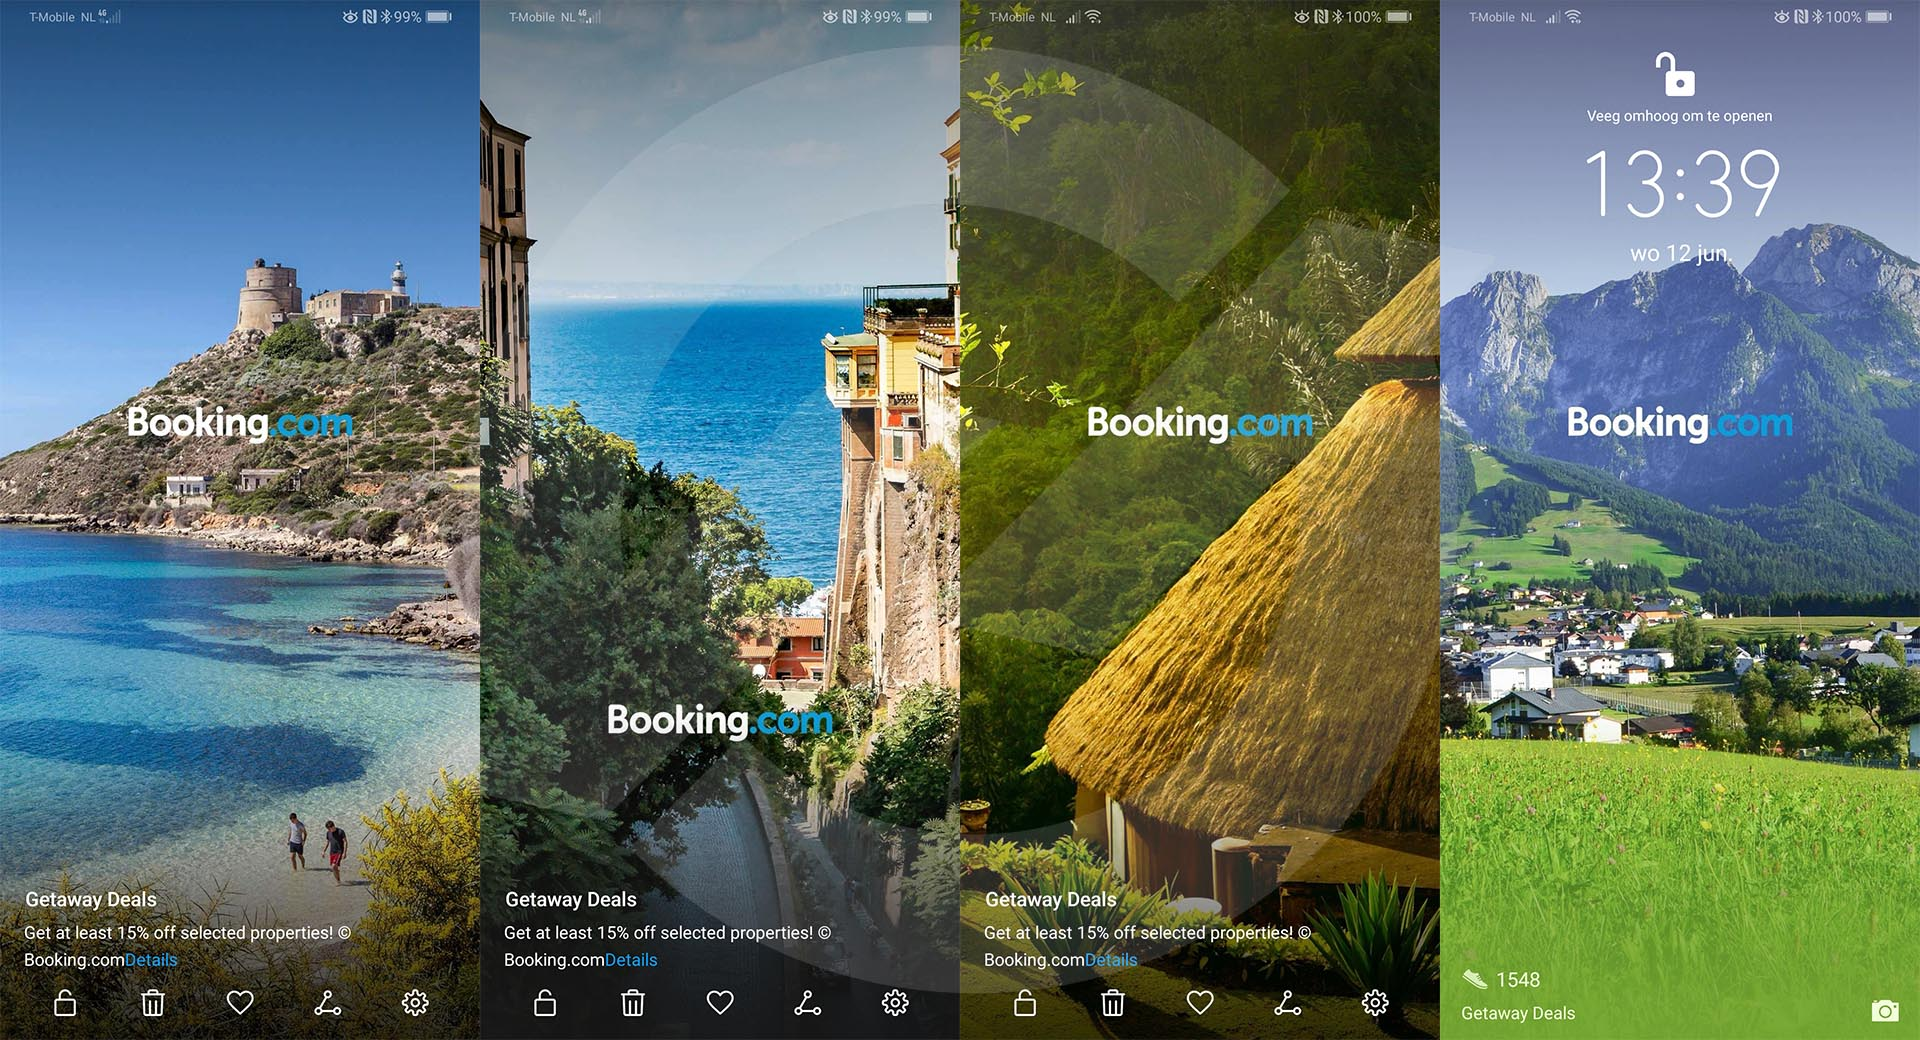 Booking.com advertenties op Huawei P30 Pro Lockscreen